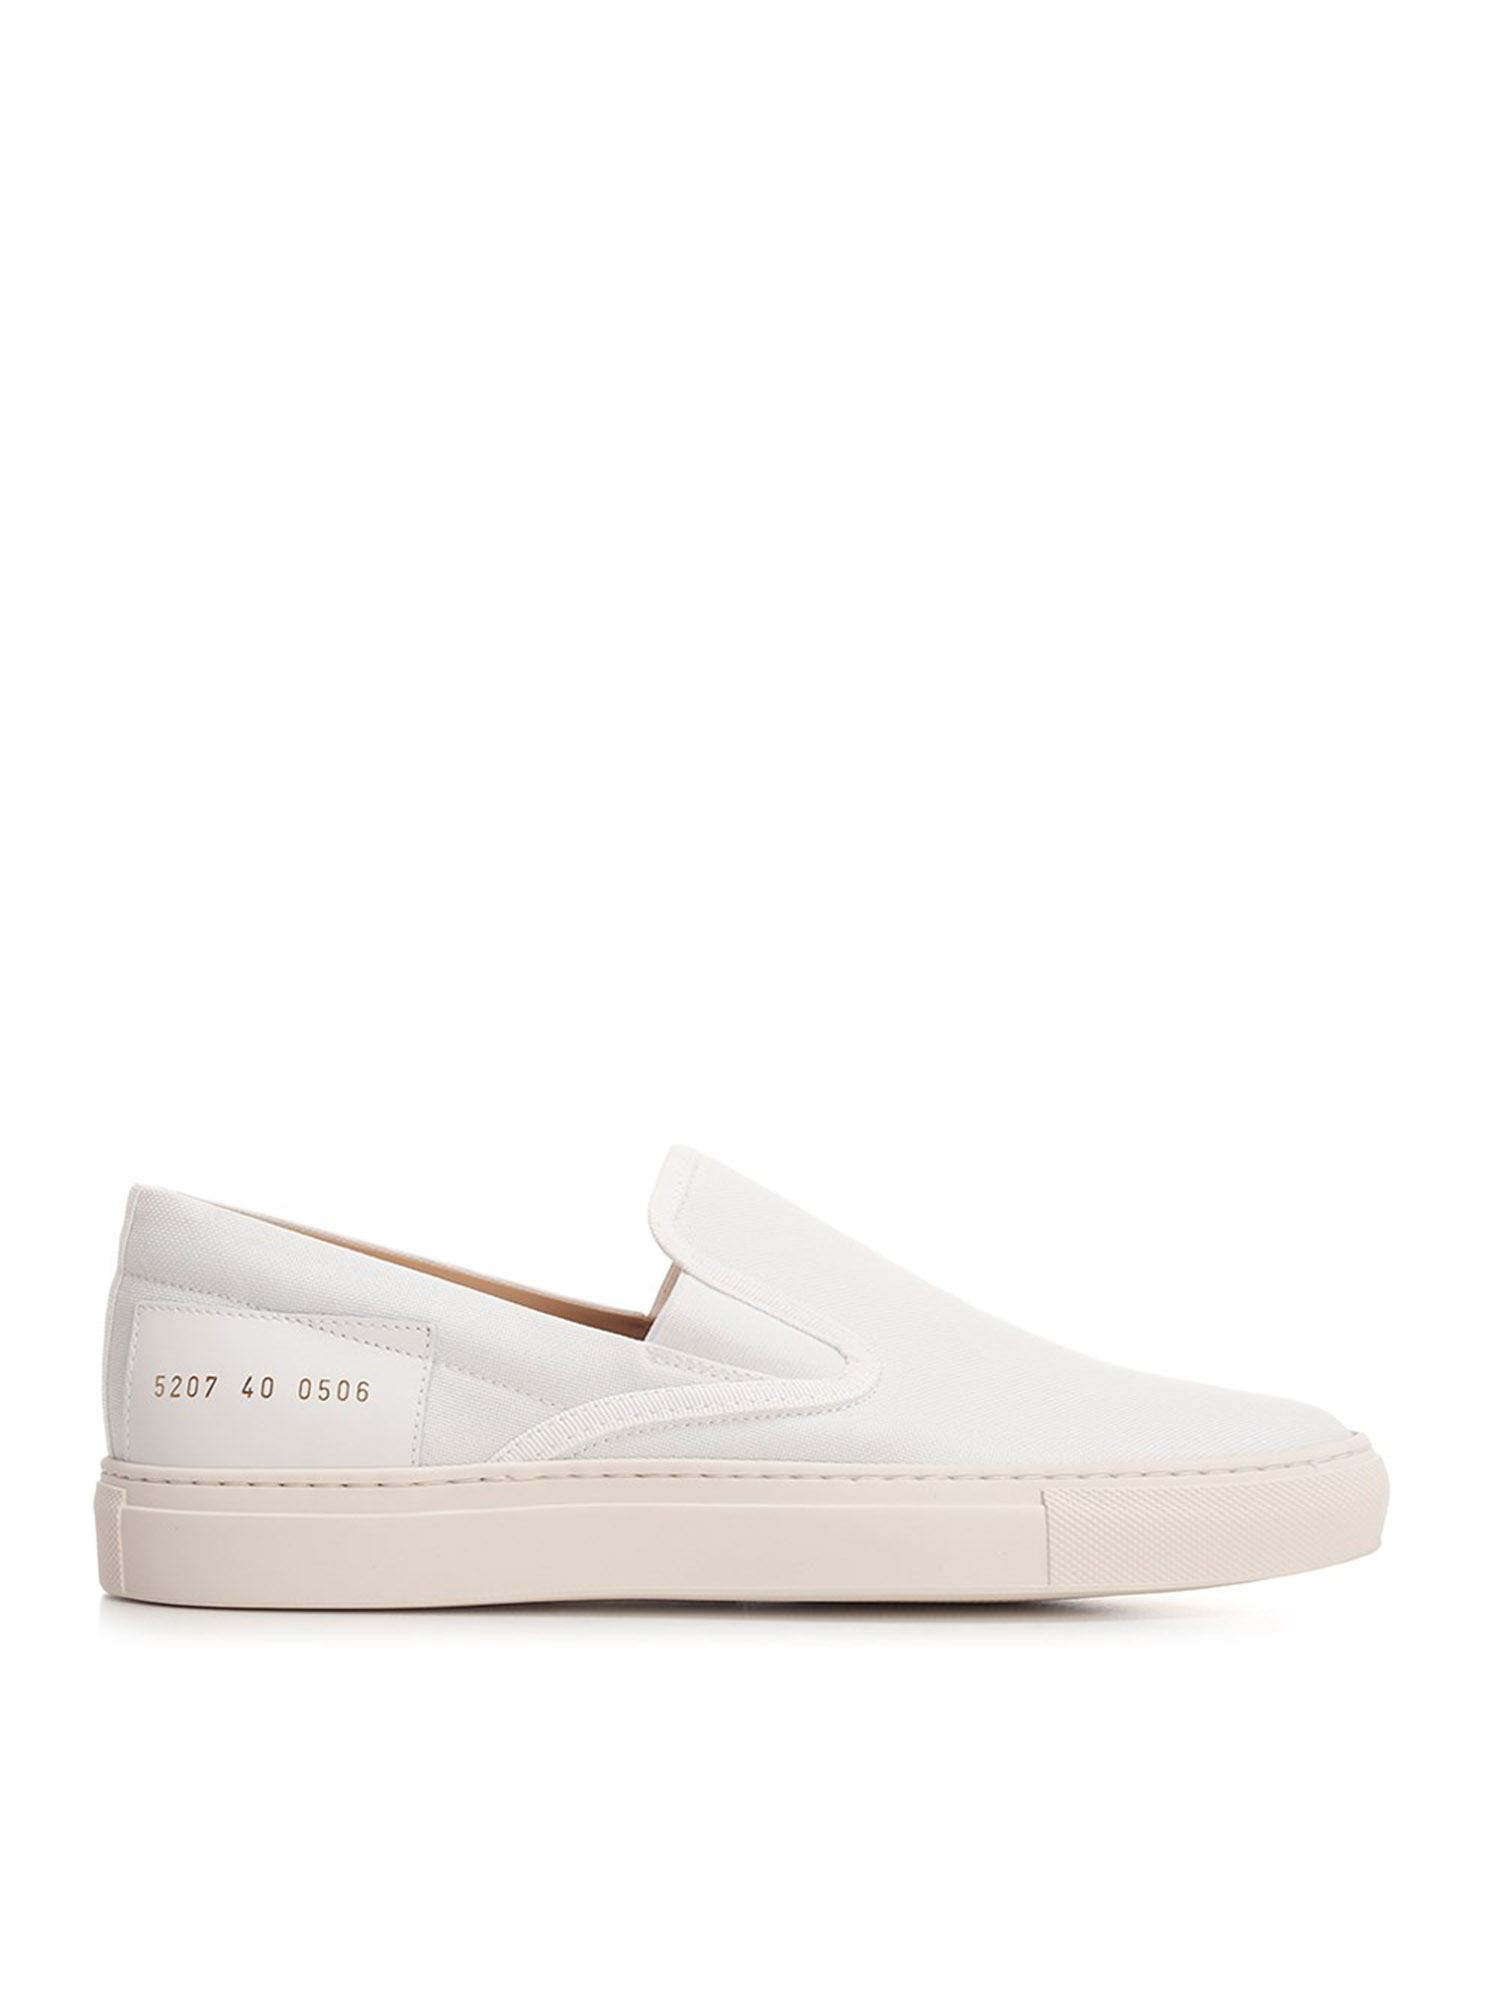 Common Projects Sneakers CANVAS SLIP ON SNEAKERS IN WHITE